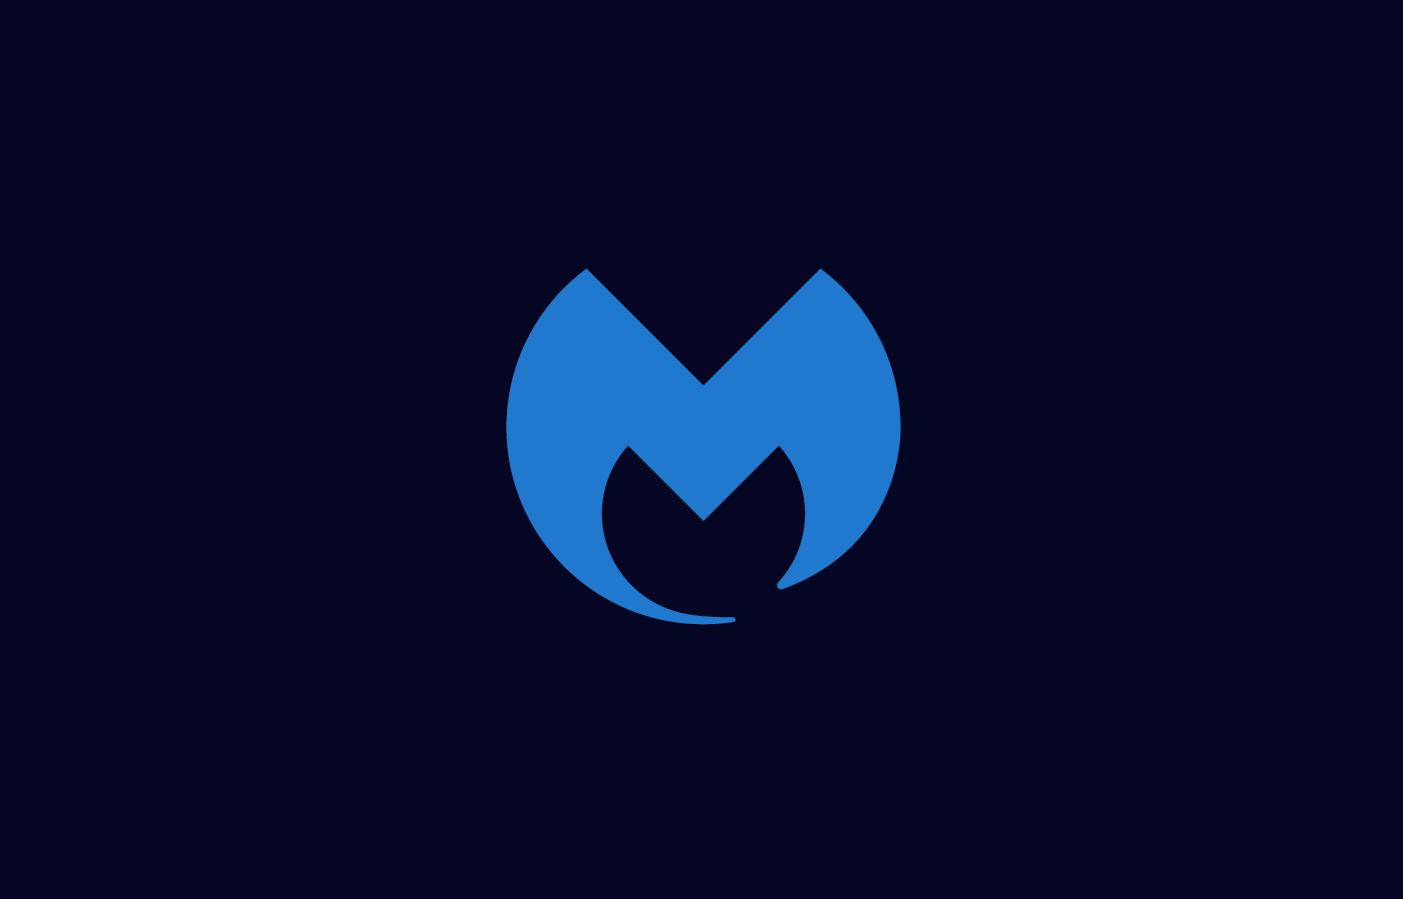 new-malwarebytes-icon-dark